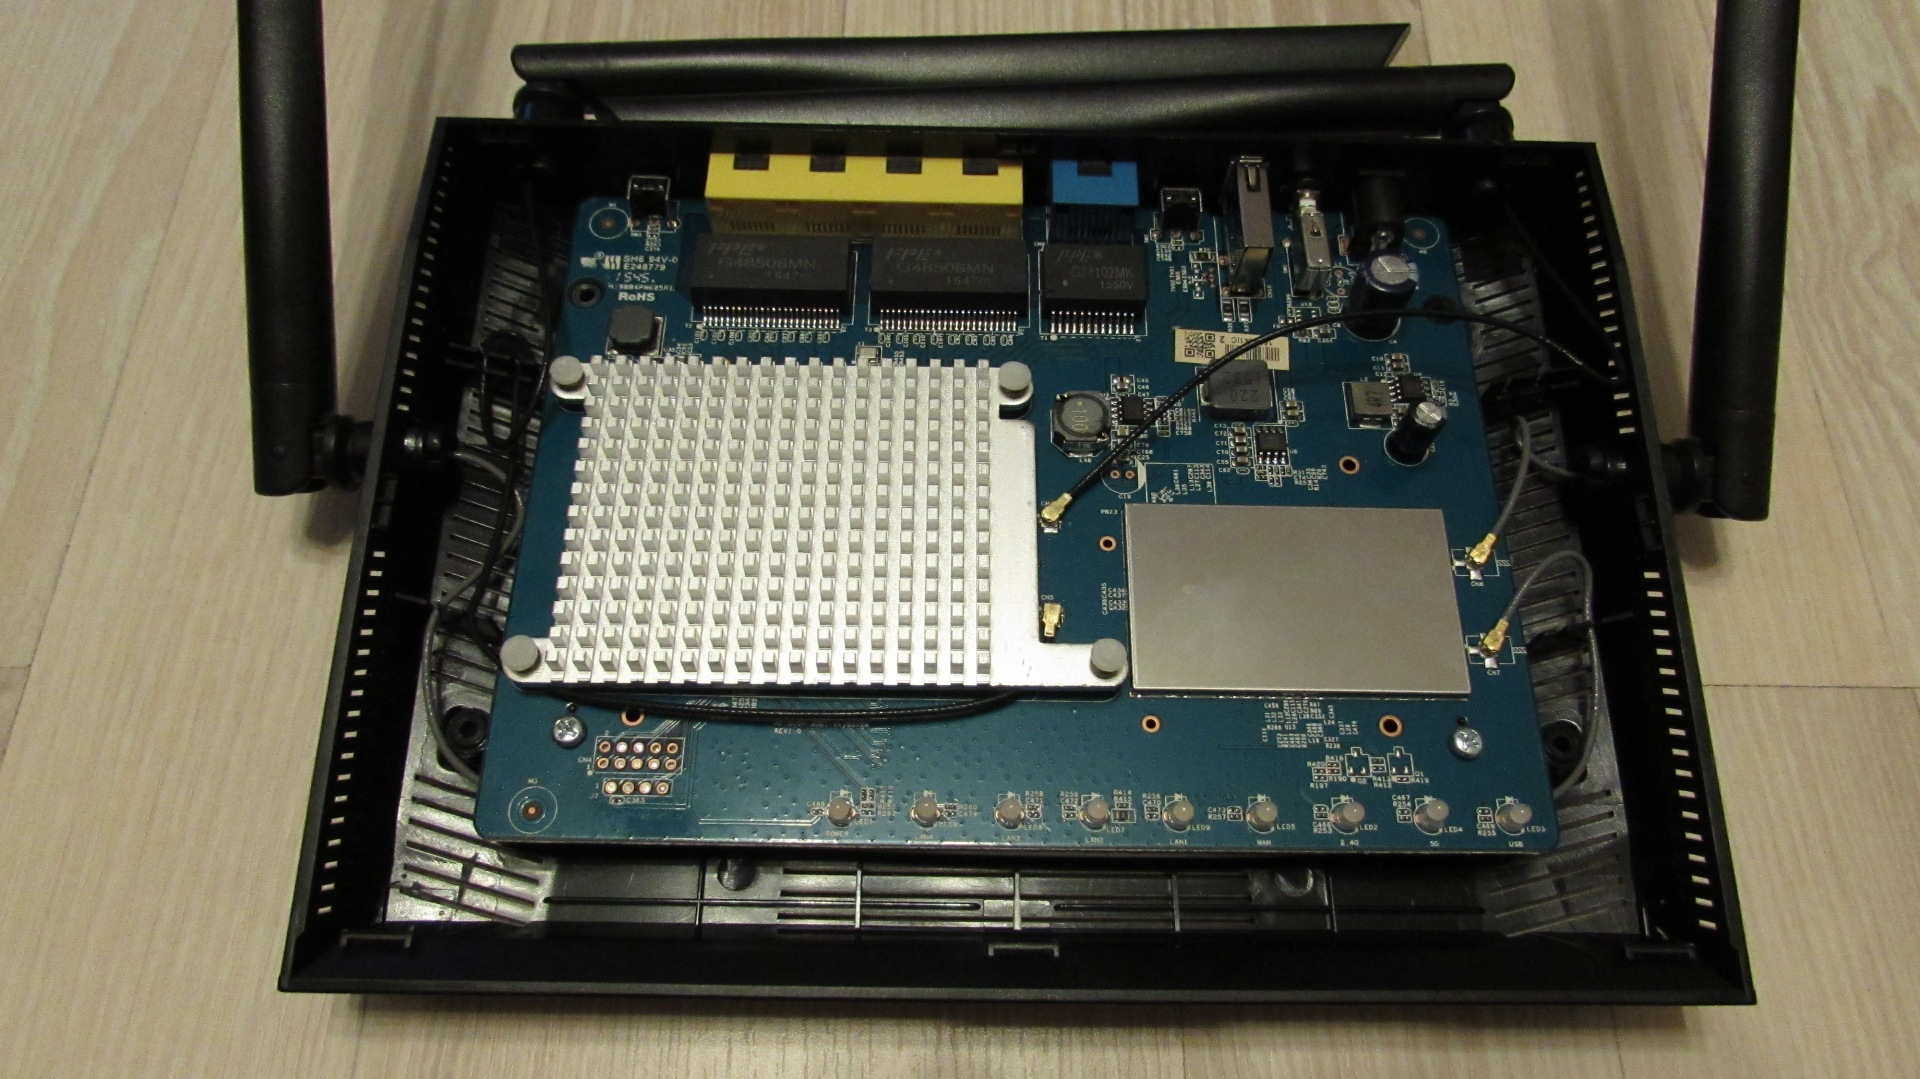 openlinksys.info/images/rt-ac1200g/IMG_0593.JPG